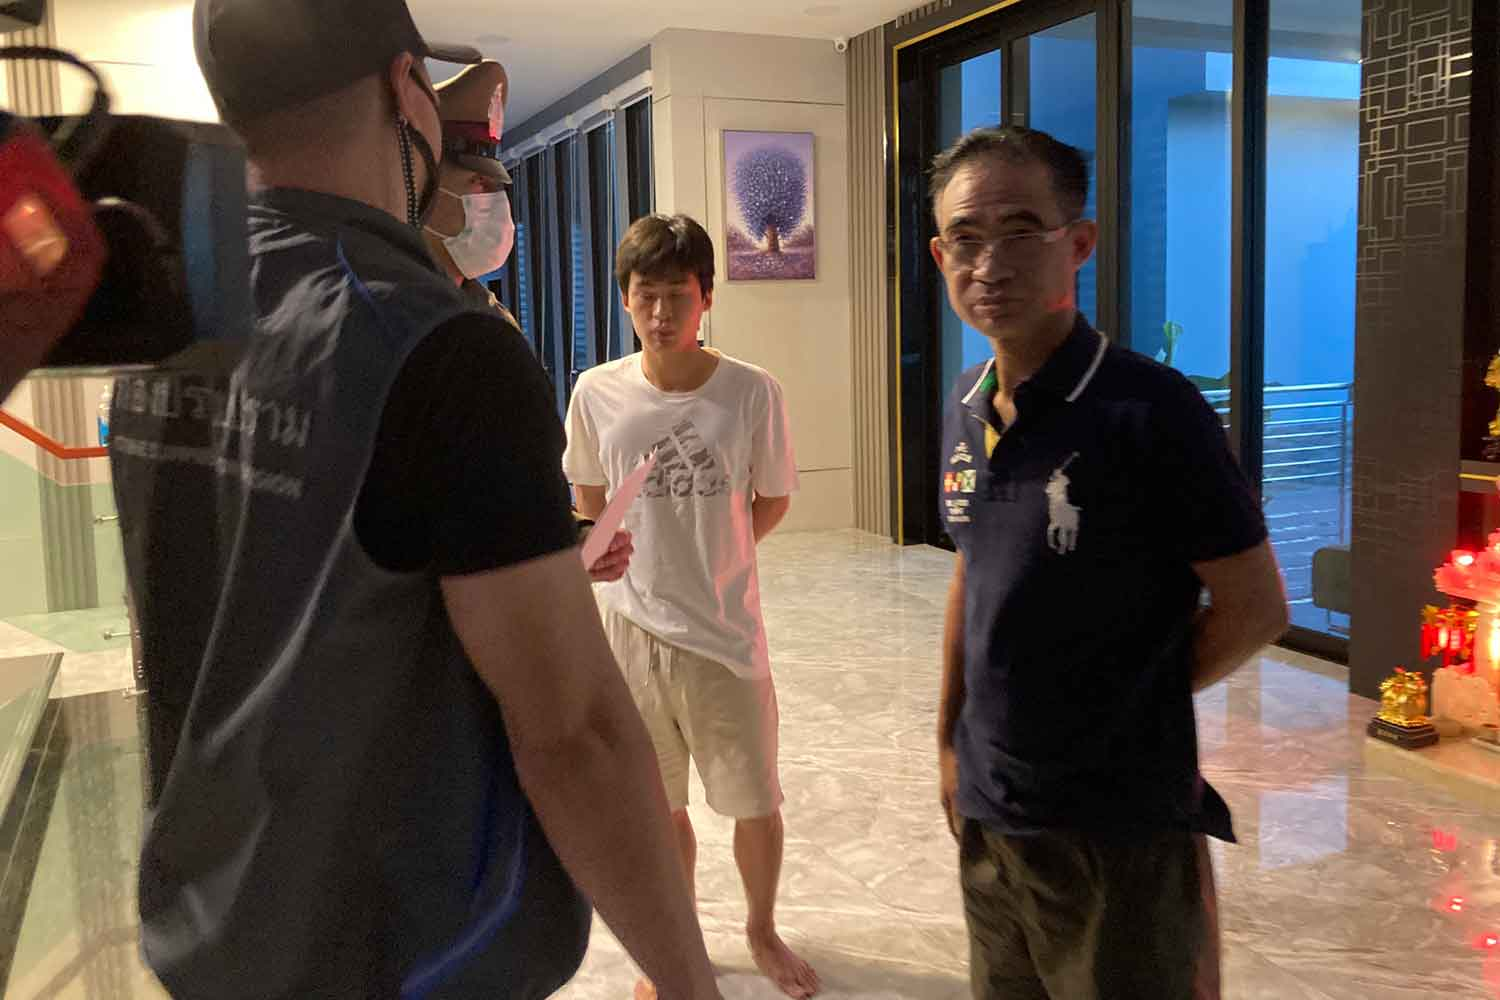 Somchai Jutikitdecha, right, is arrested at his two-rai residence on Rat Bamrung Road in tambon Noen Phra of Muang district, Rayong, about 6am on Friday. His 26-year-old son Thana, centre, was also arrested. (Police photo)